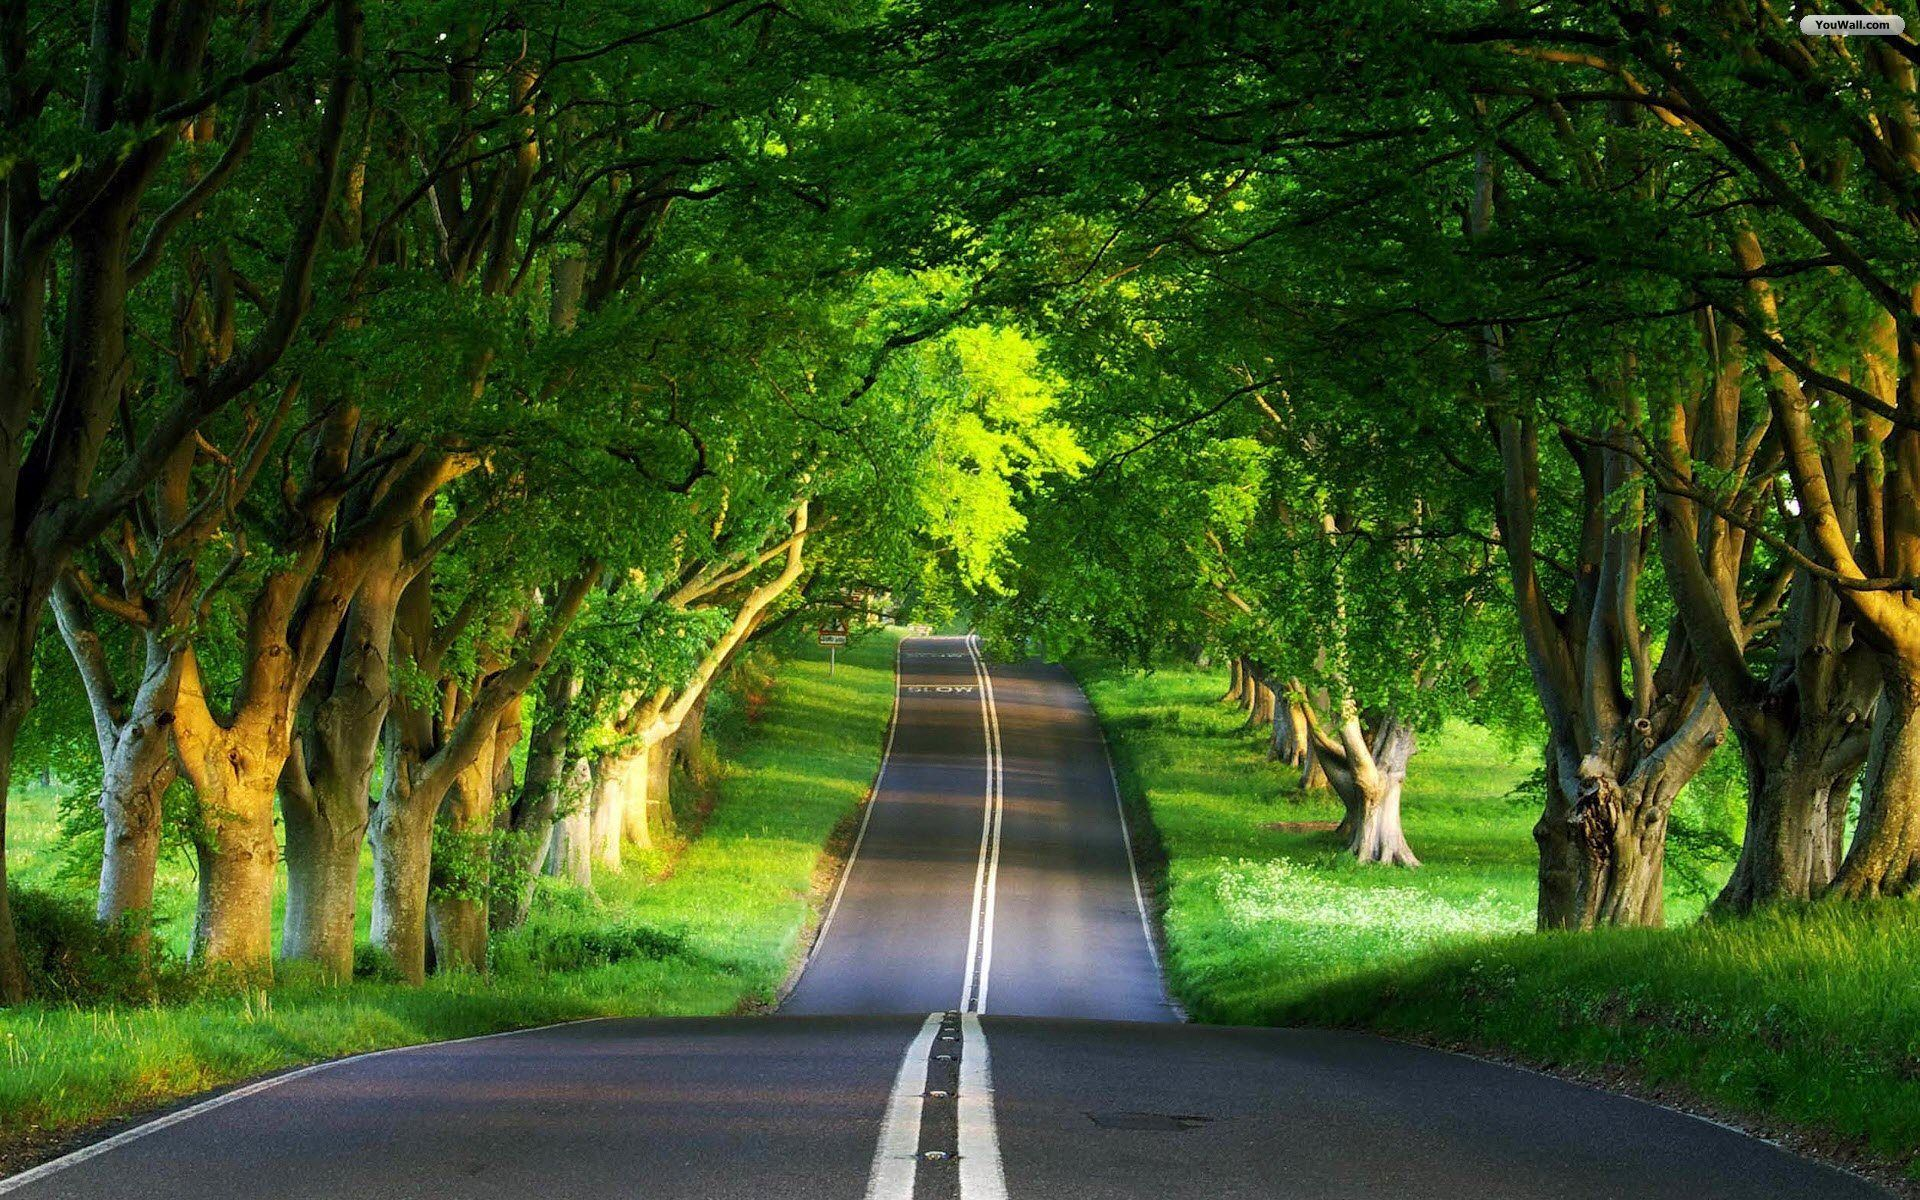 Green Road Wallpapers Http Wallpapers Ae Green Road Wallpapers Html With Images Nature Desktop Wallpaper Hd Nature Wallpapers Nature Desktop